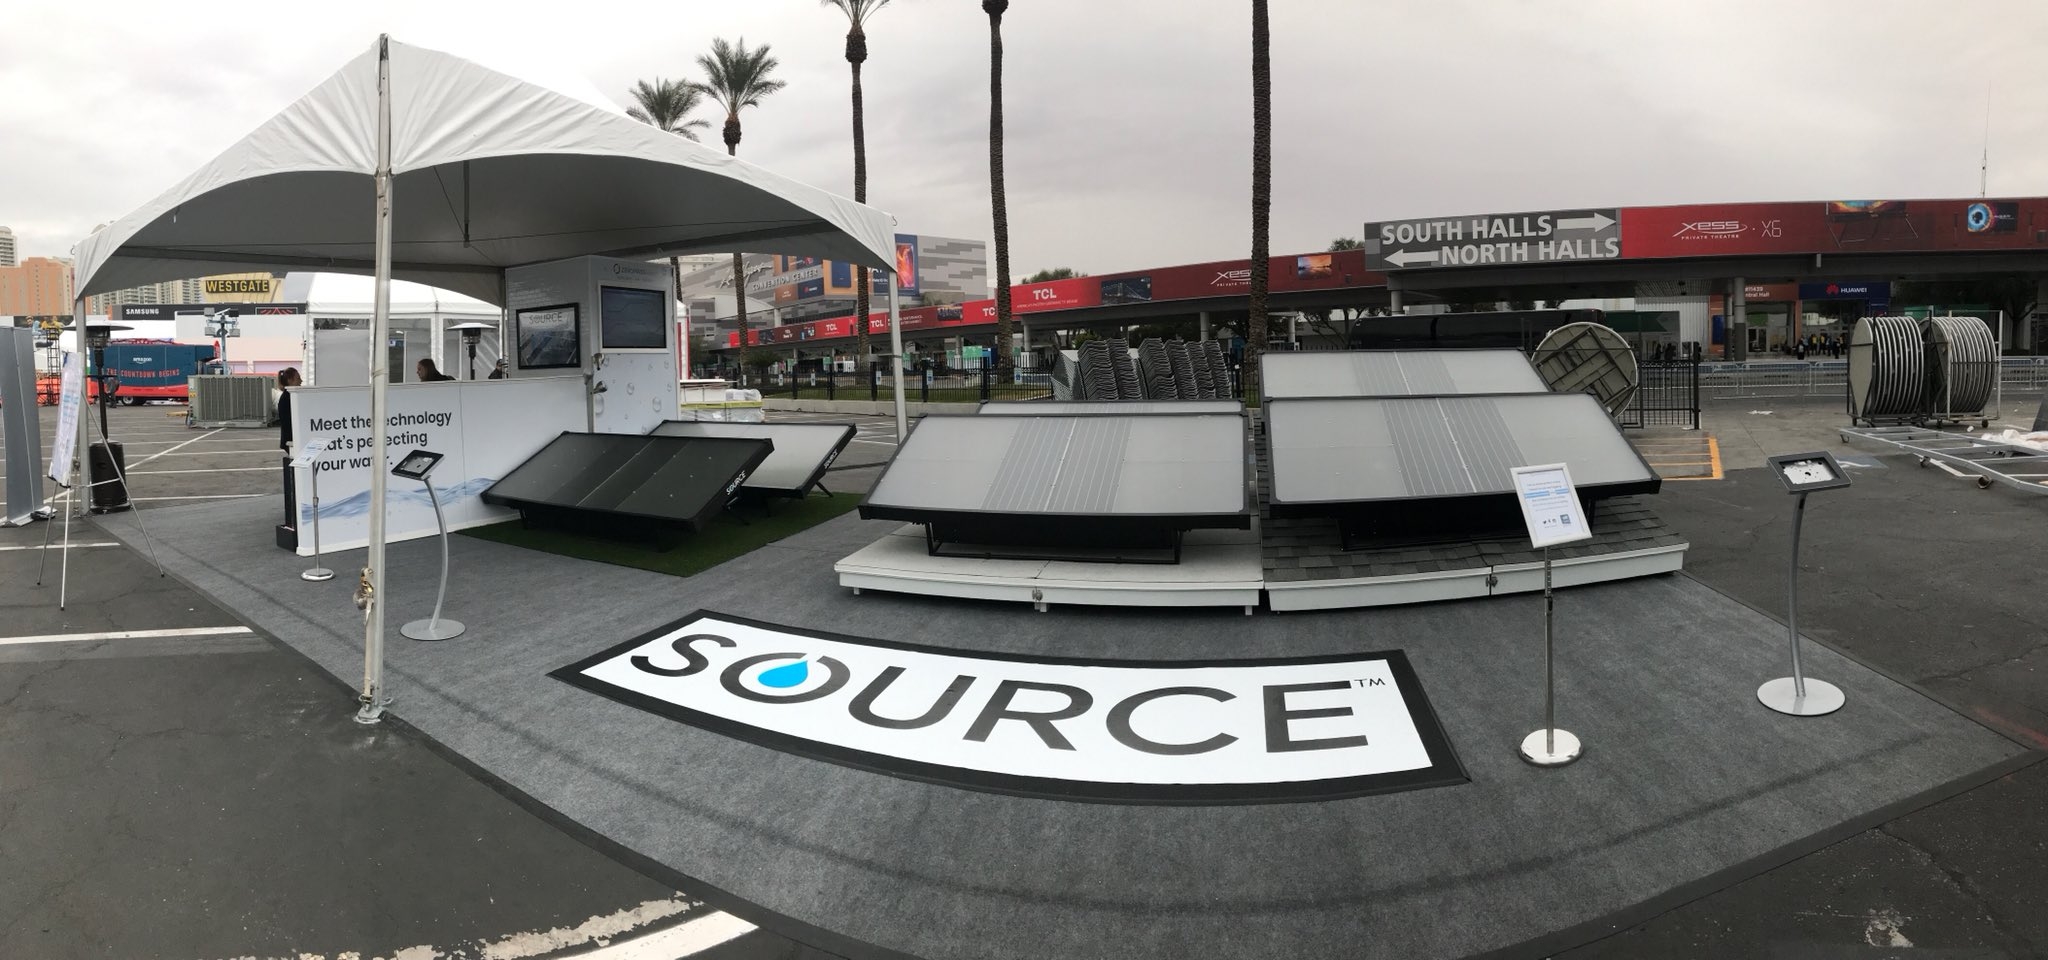 Make sure to check out @zeromasswater #SourceHydroPanels this week at @CES  #Water #Solutions #CES2018 #Source https://t.co/XO2HYBooX9